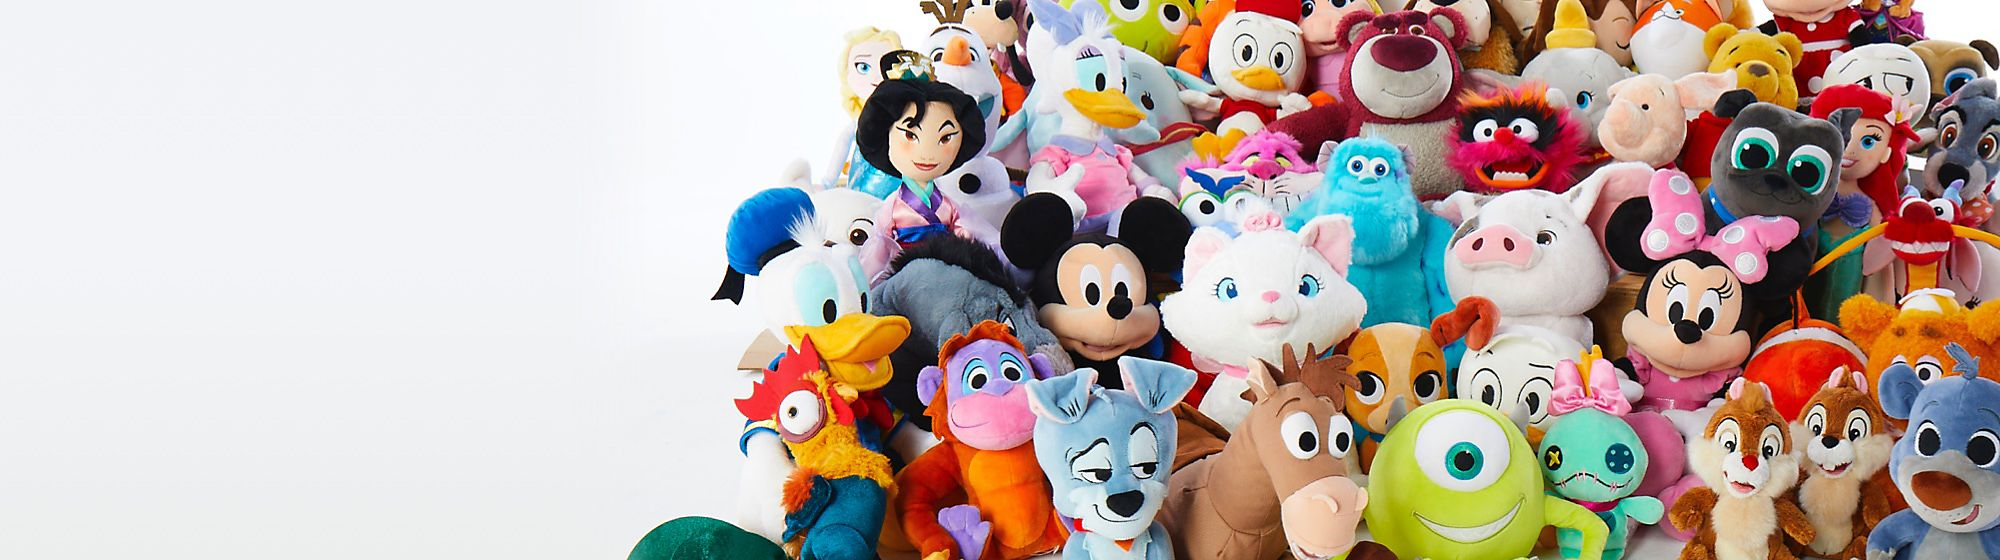 Soft Toys Meet the best huggers ever! Explore our range of soft toys  including Stitch, Mickey Mouse, Winnie the Pooh and more